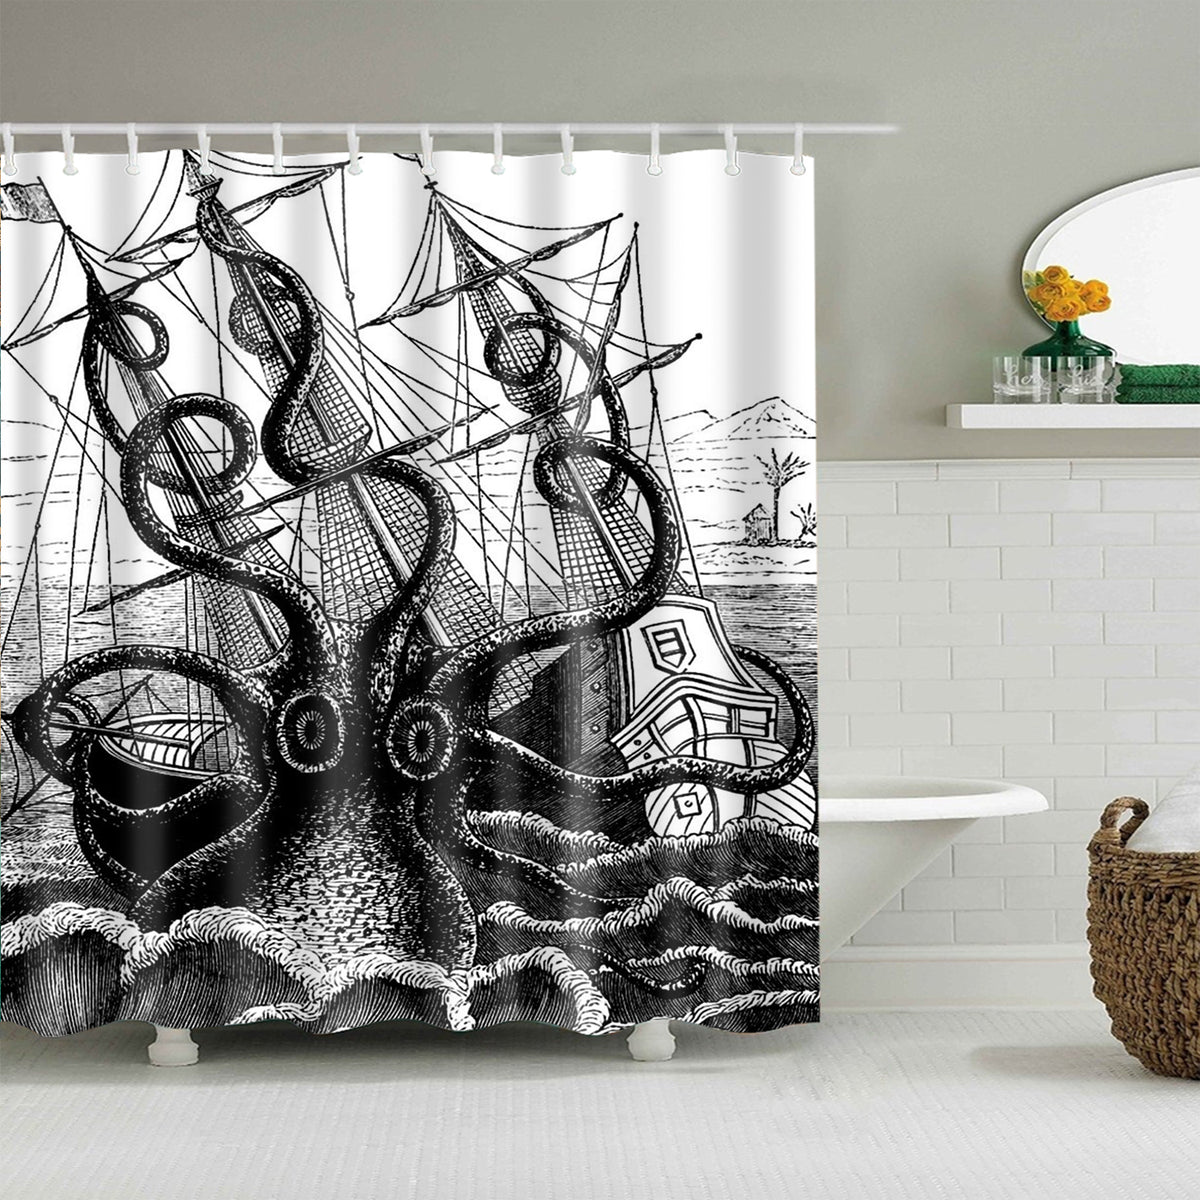 Crazy Giant Octopus Attack Boat Shower Curtain